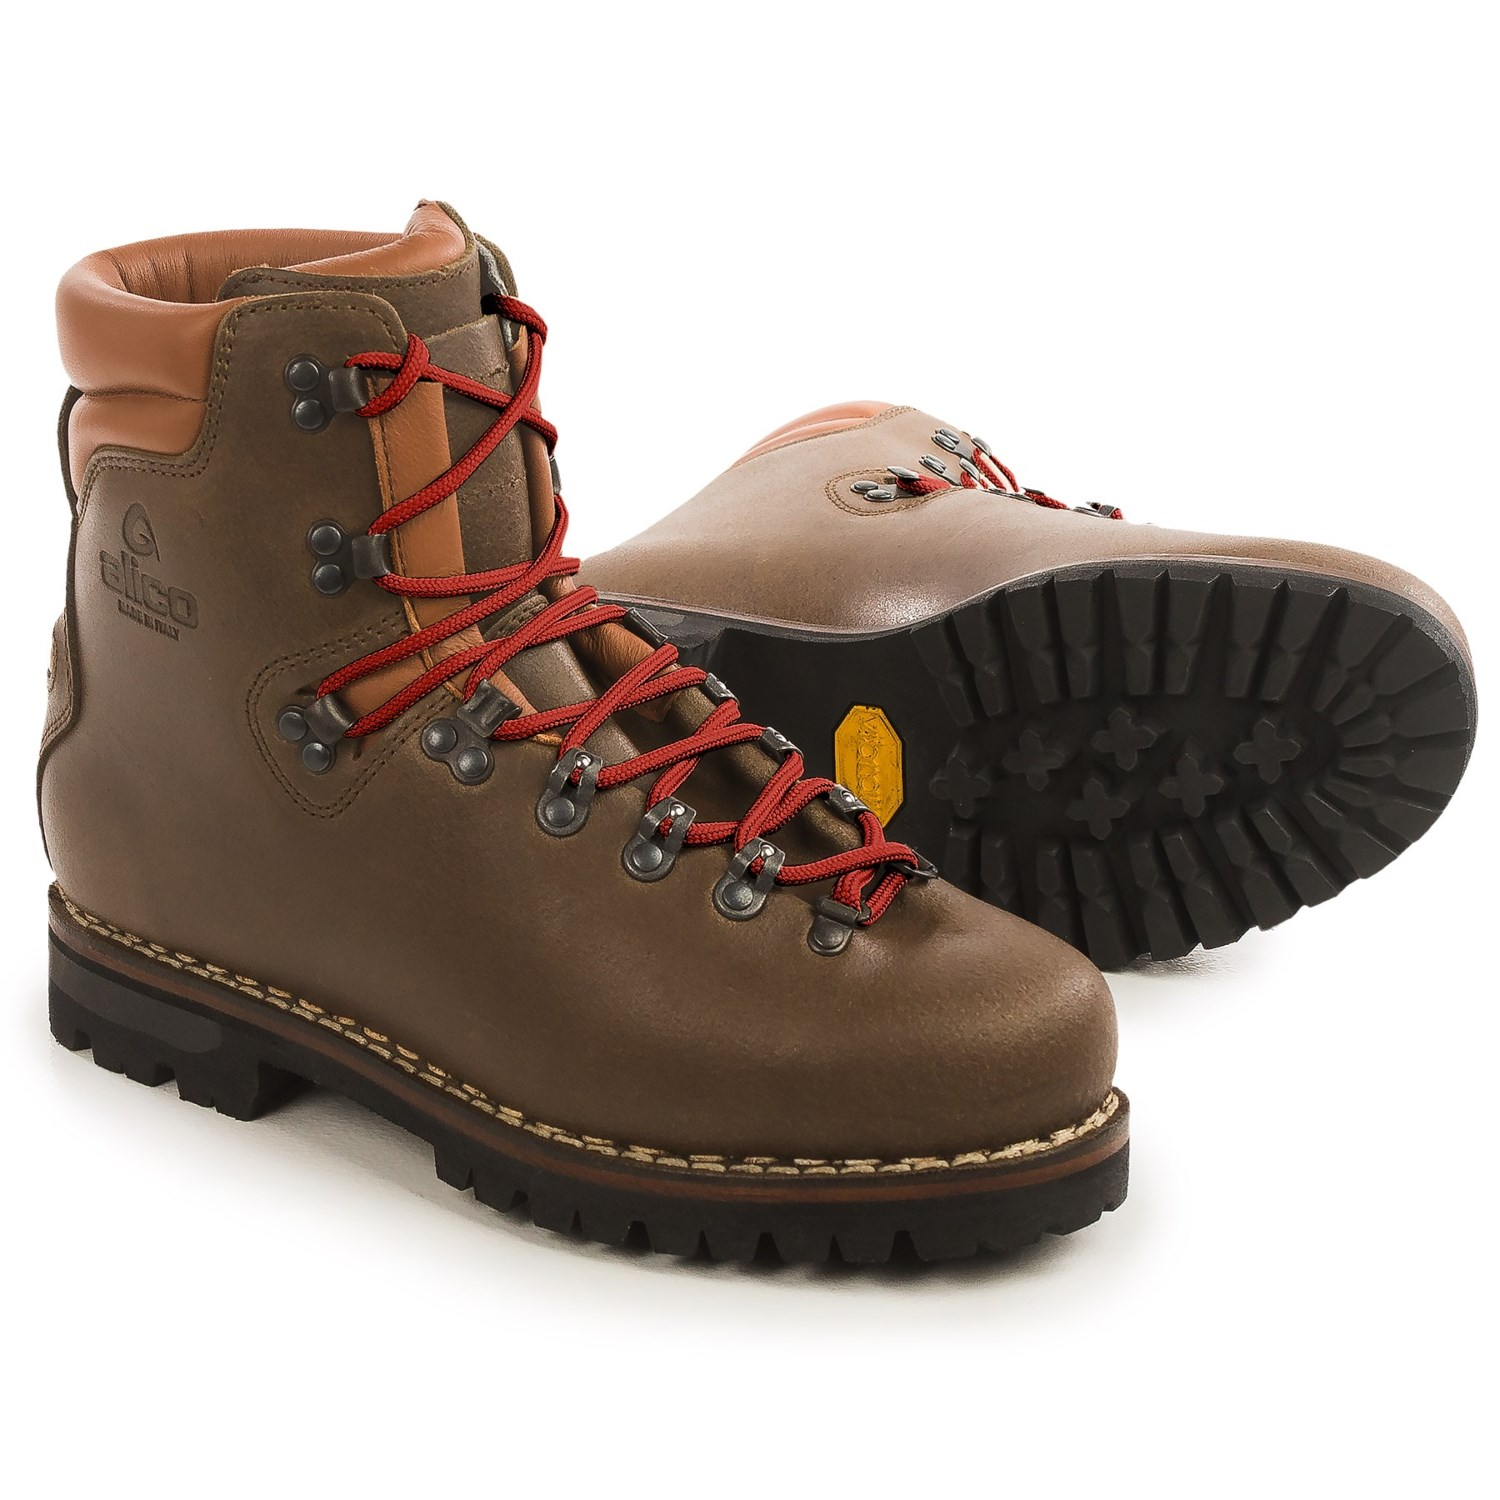 Keen Brown Leather Boots